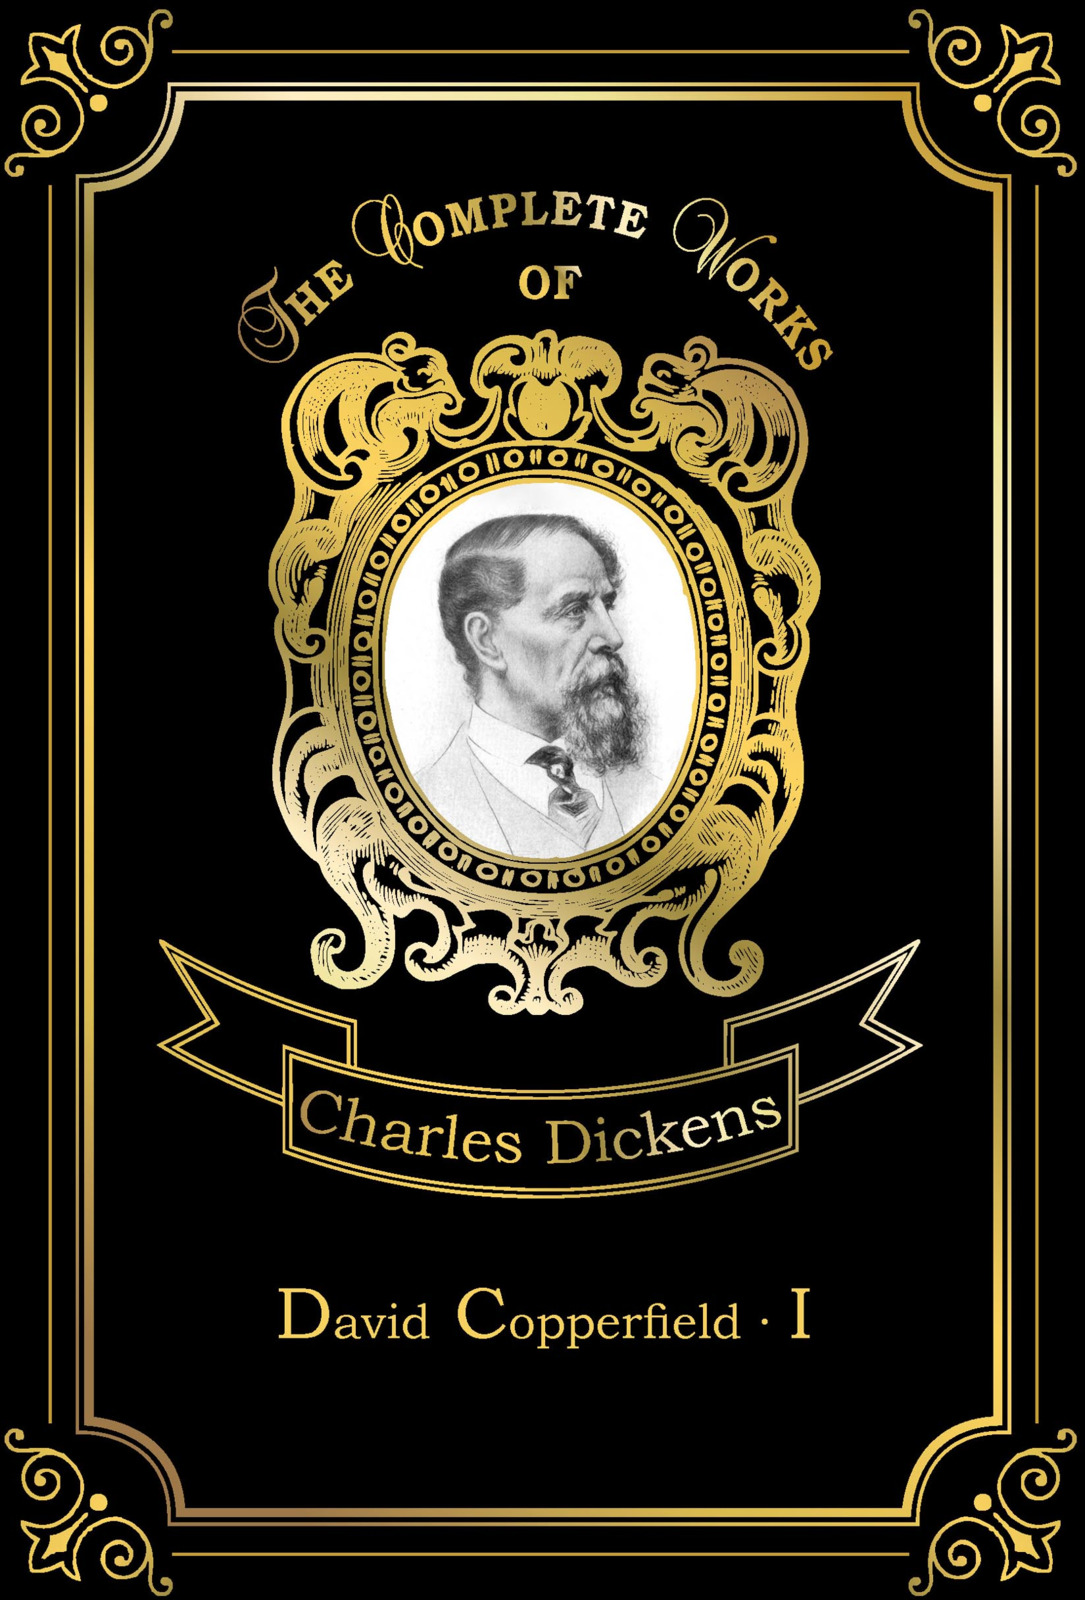 C. Dickens David Copperfield: Book 1 dickens charles david copperfield part 2 давид копперфильд ч 2